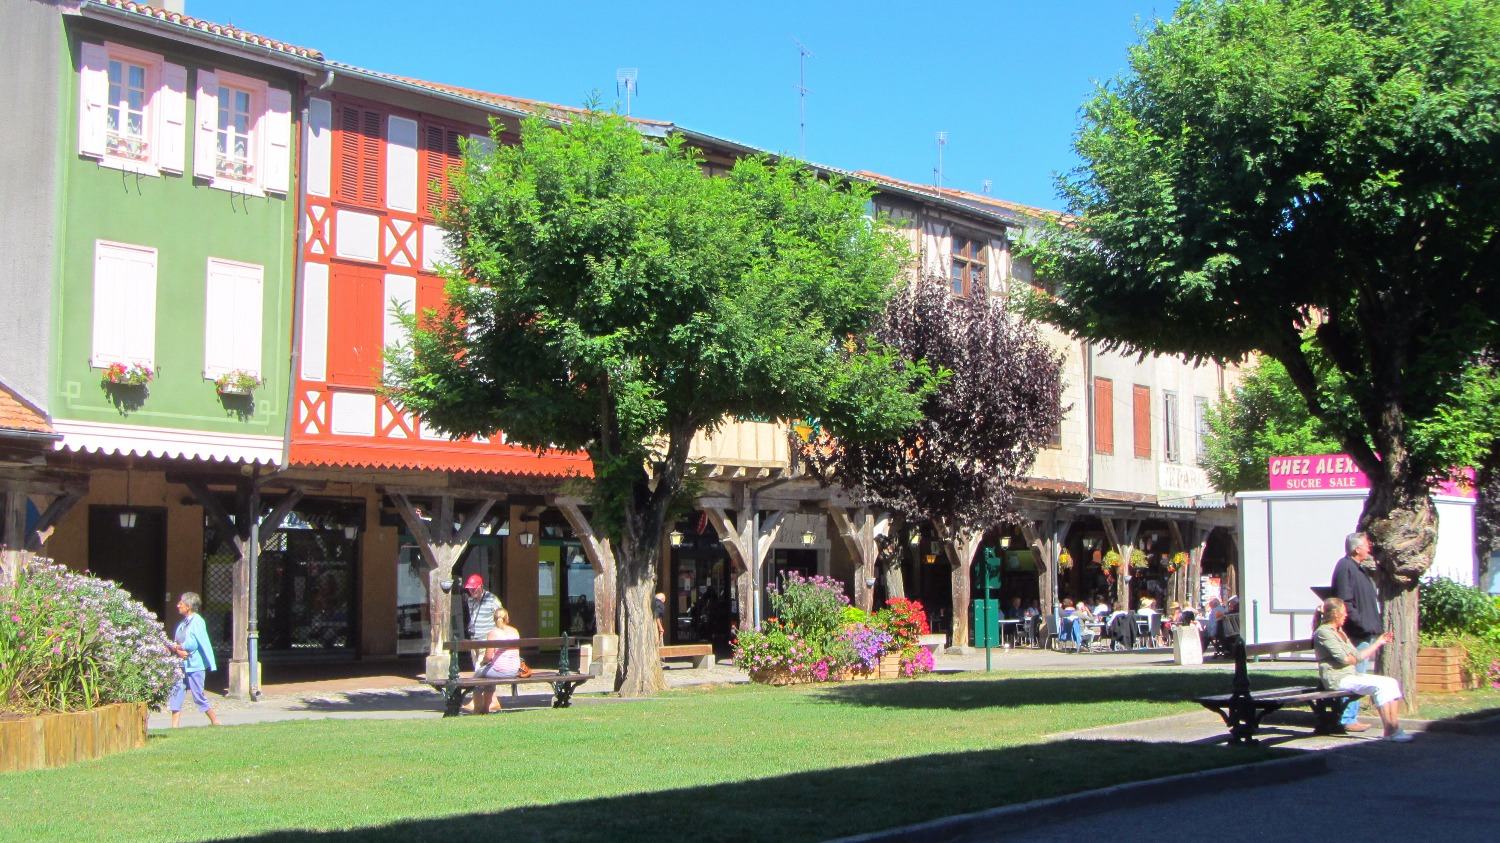 Town square in the summer